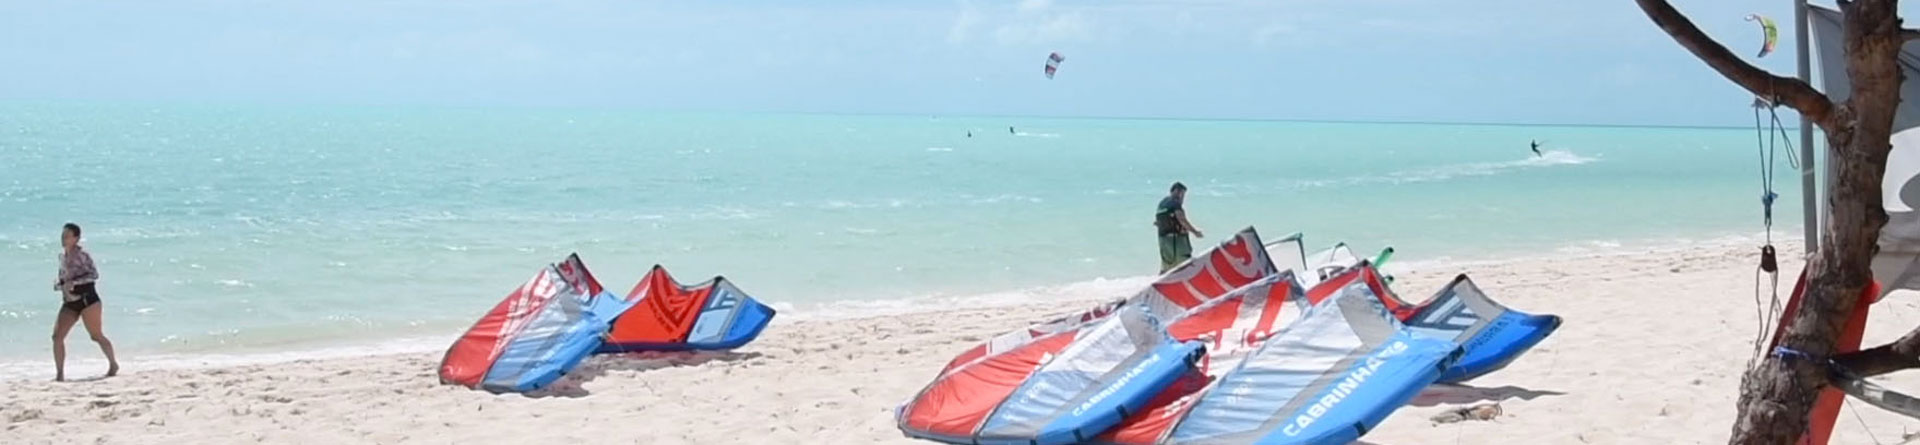 La maison Bleu Kiteboarding turquoise - Turks and Caicos Rental